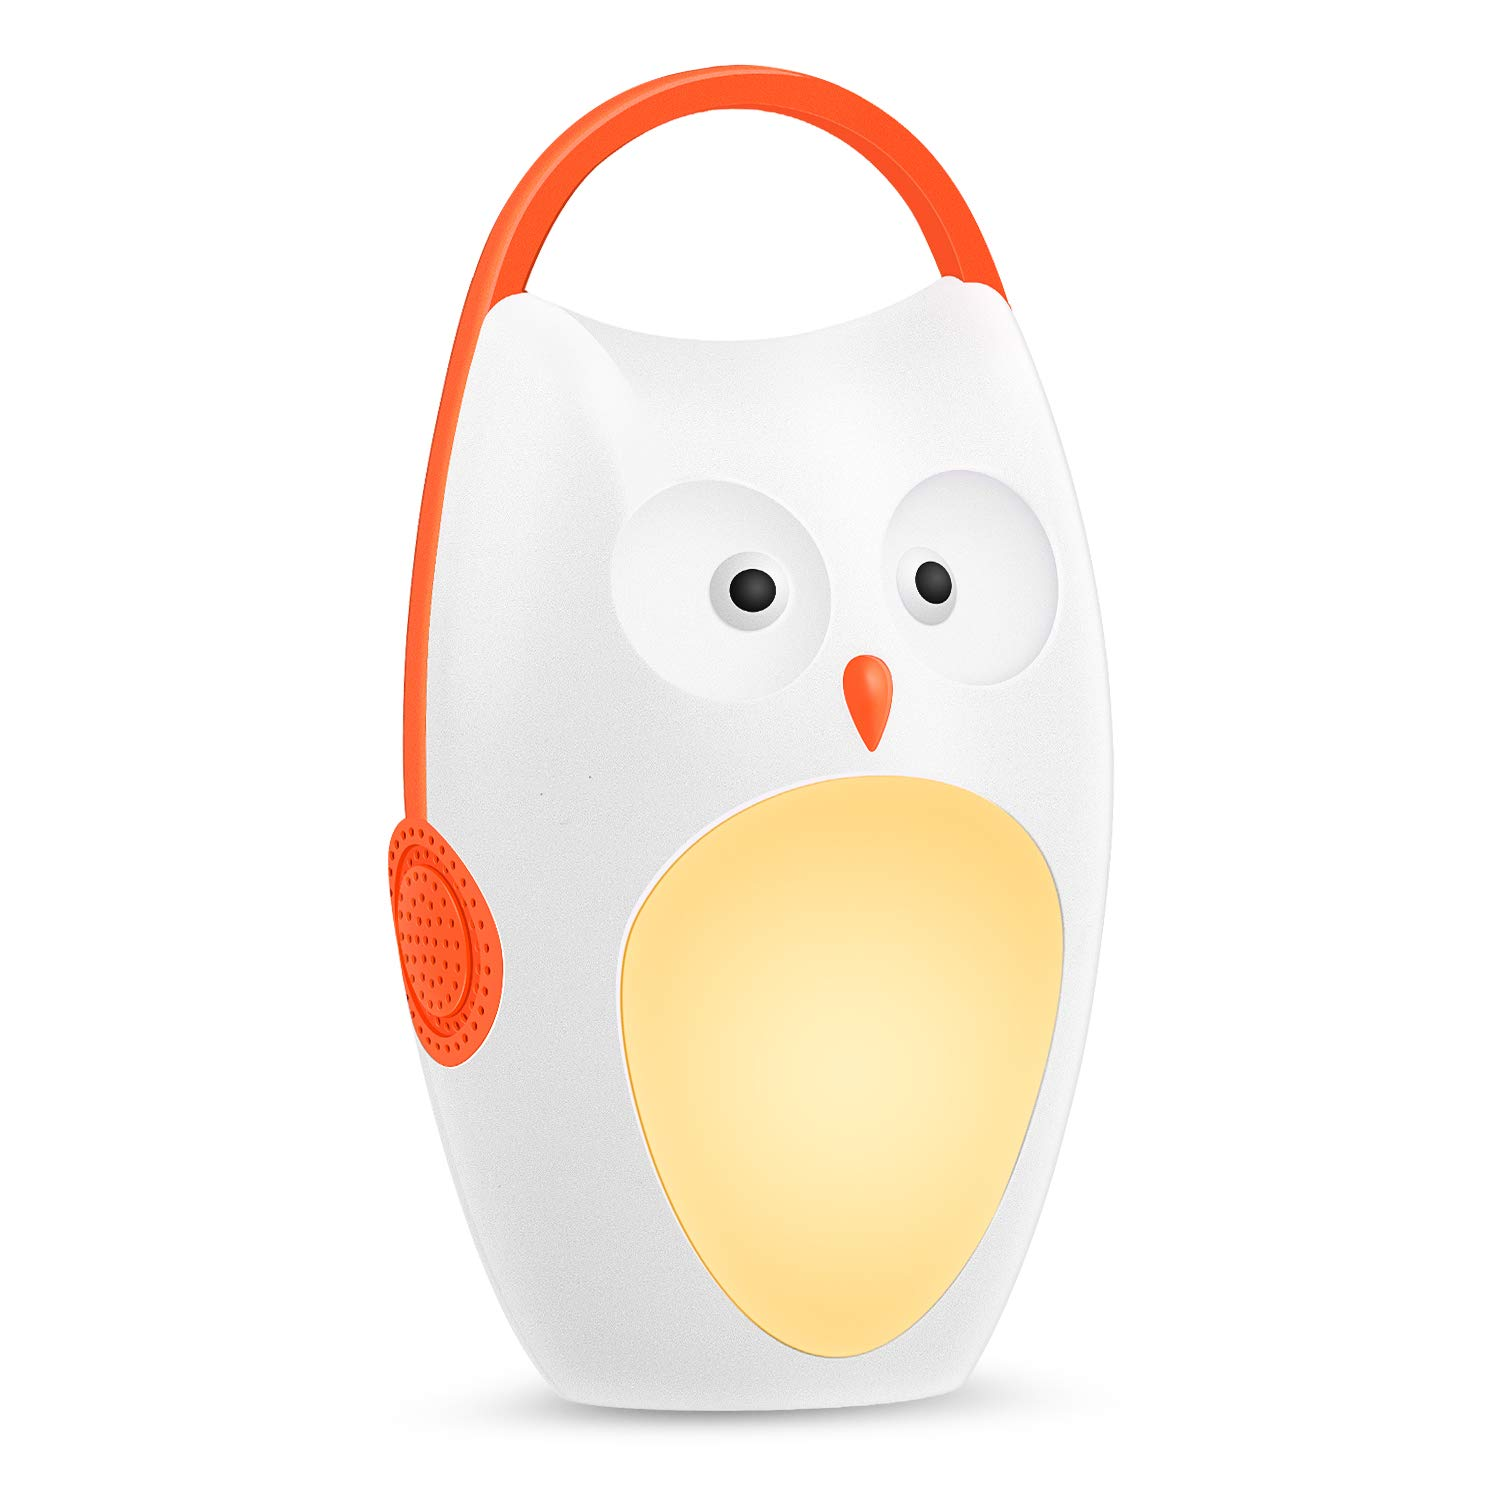 SOAIY Baby Sleep Soother Owl Portable White Noise Shusher Sound Machine with Sleep Aid  Night Light,7 Soothing Sounds with Volume Control,Auto-Timer for Traveing,Sleeping,Baby Carrige. by SOAIY